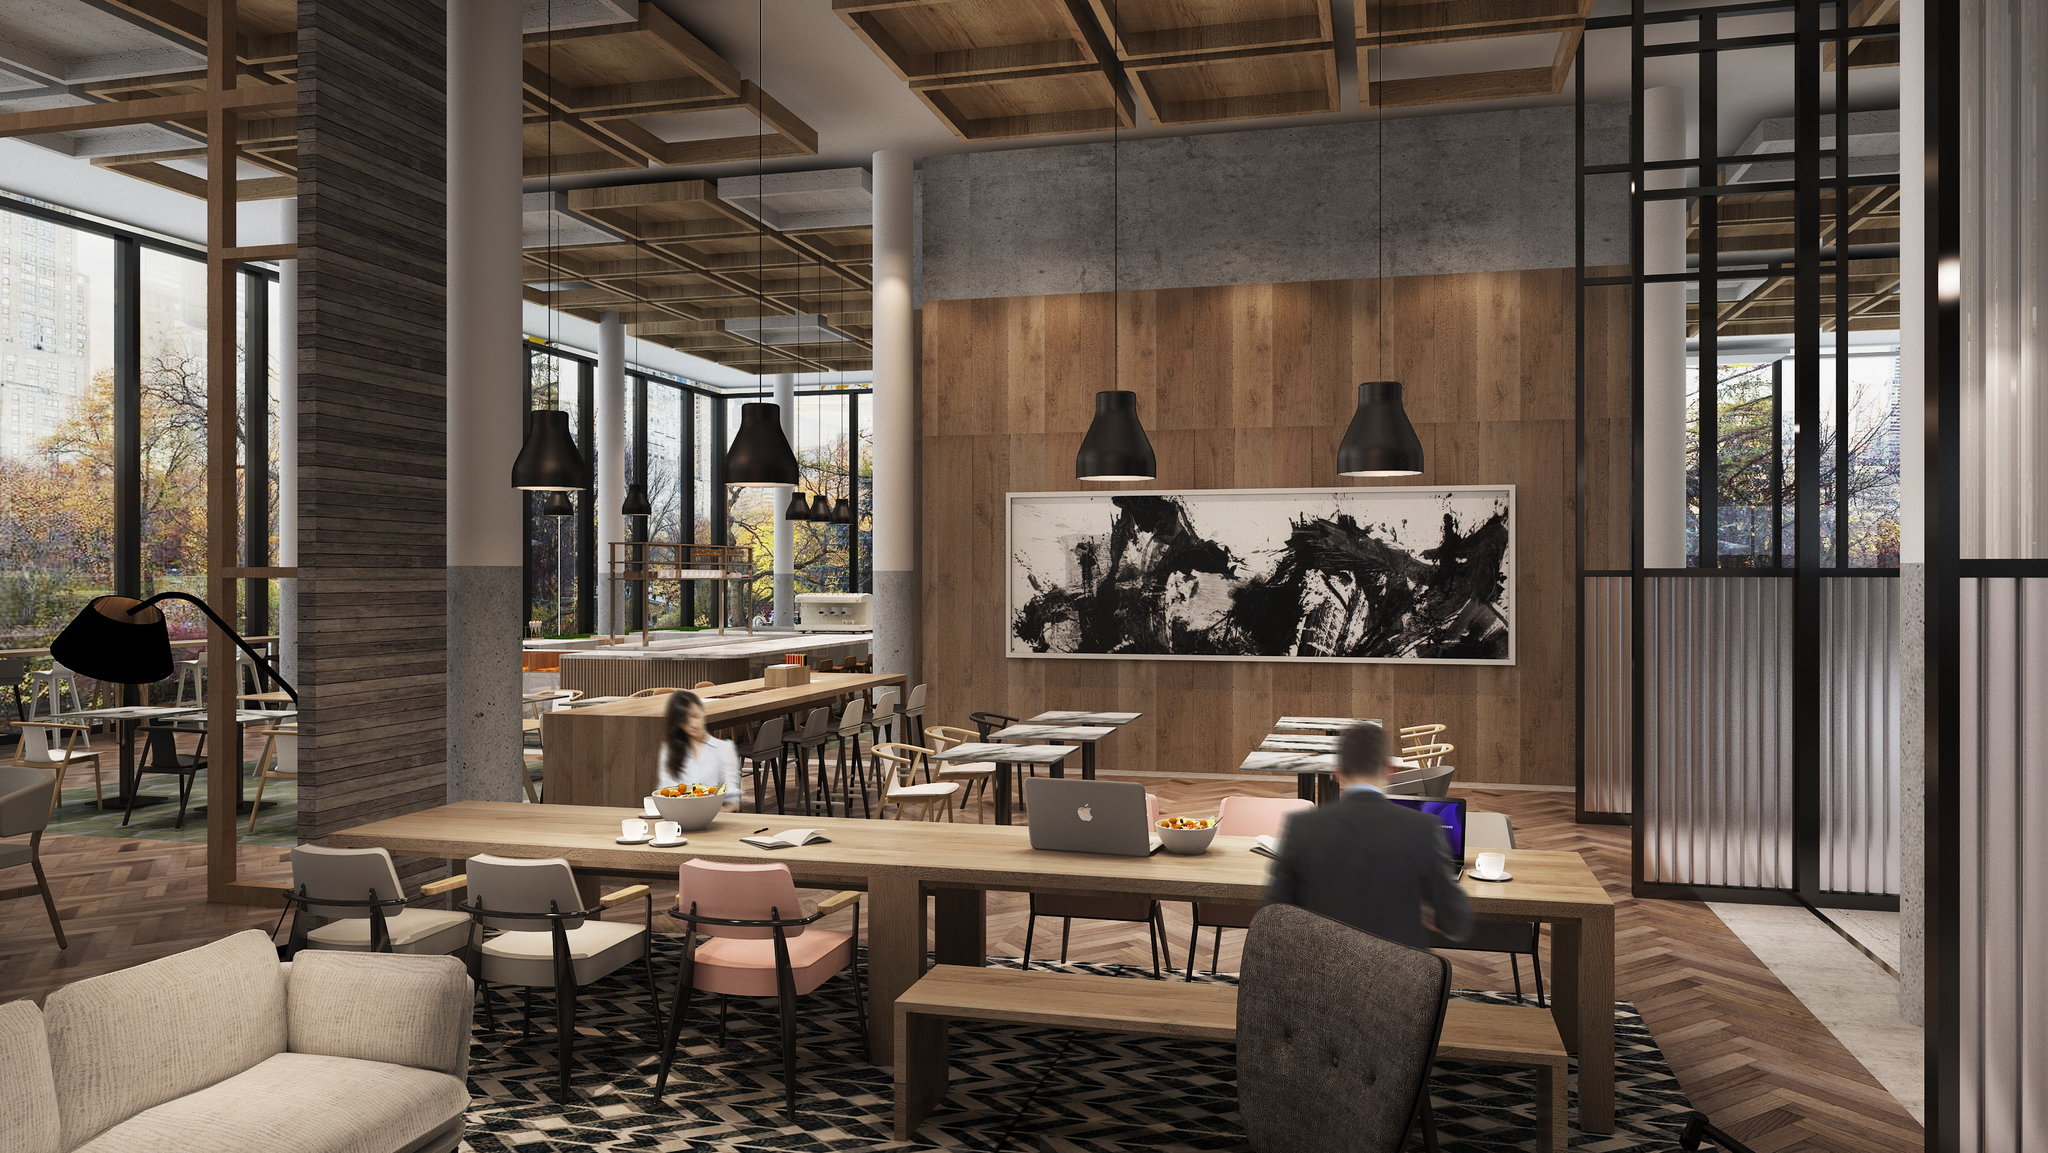 Sheraton Grand Phoenix at the frontline of brand's overhaul